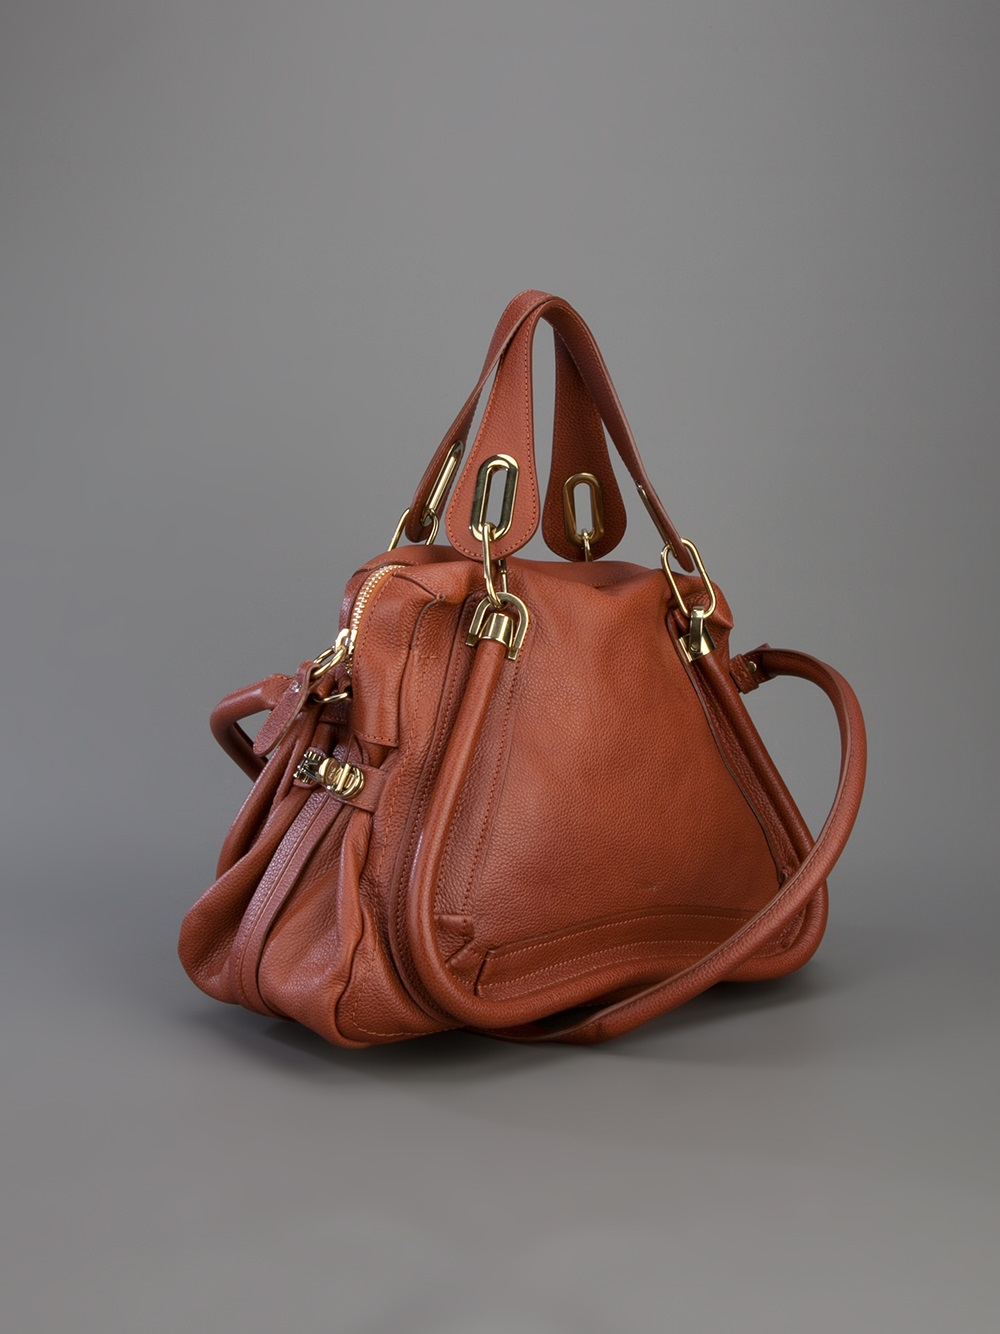 Chlo¨¦ Paraty Bag in Brown | Lyst